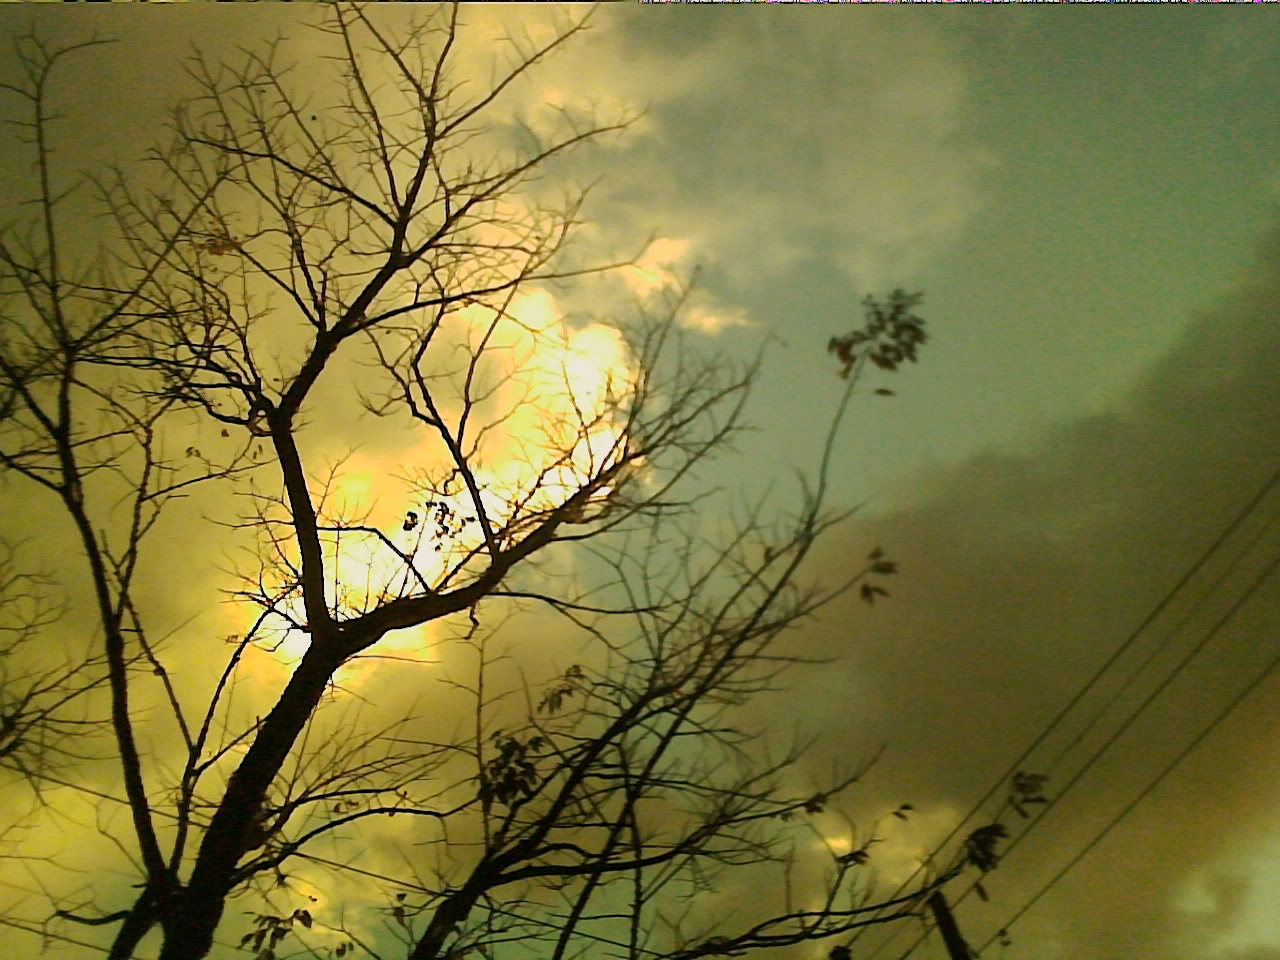 Marikina Skies | Marikina,Philippines | 2012